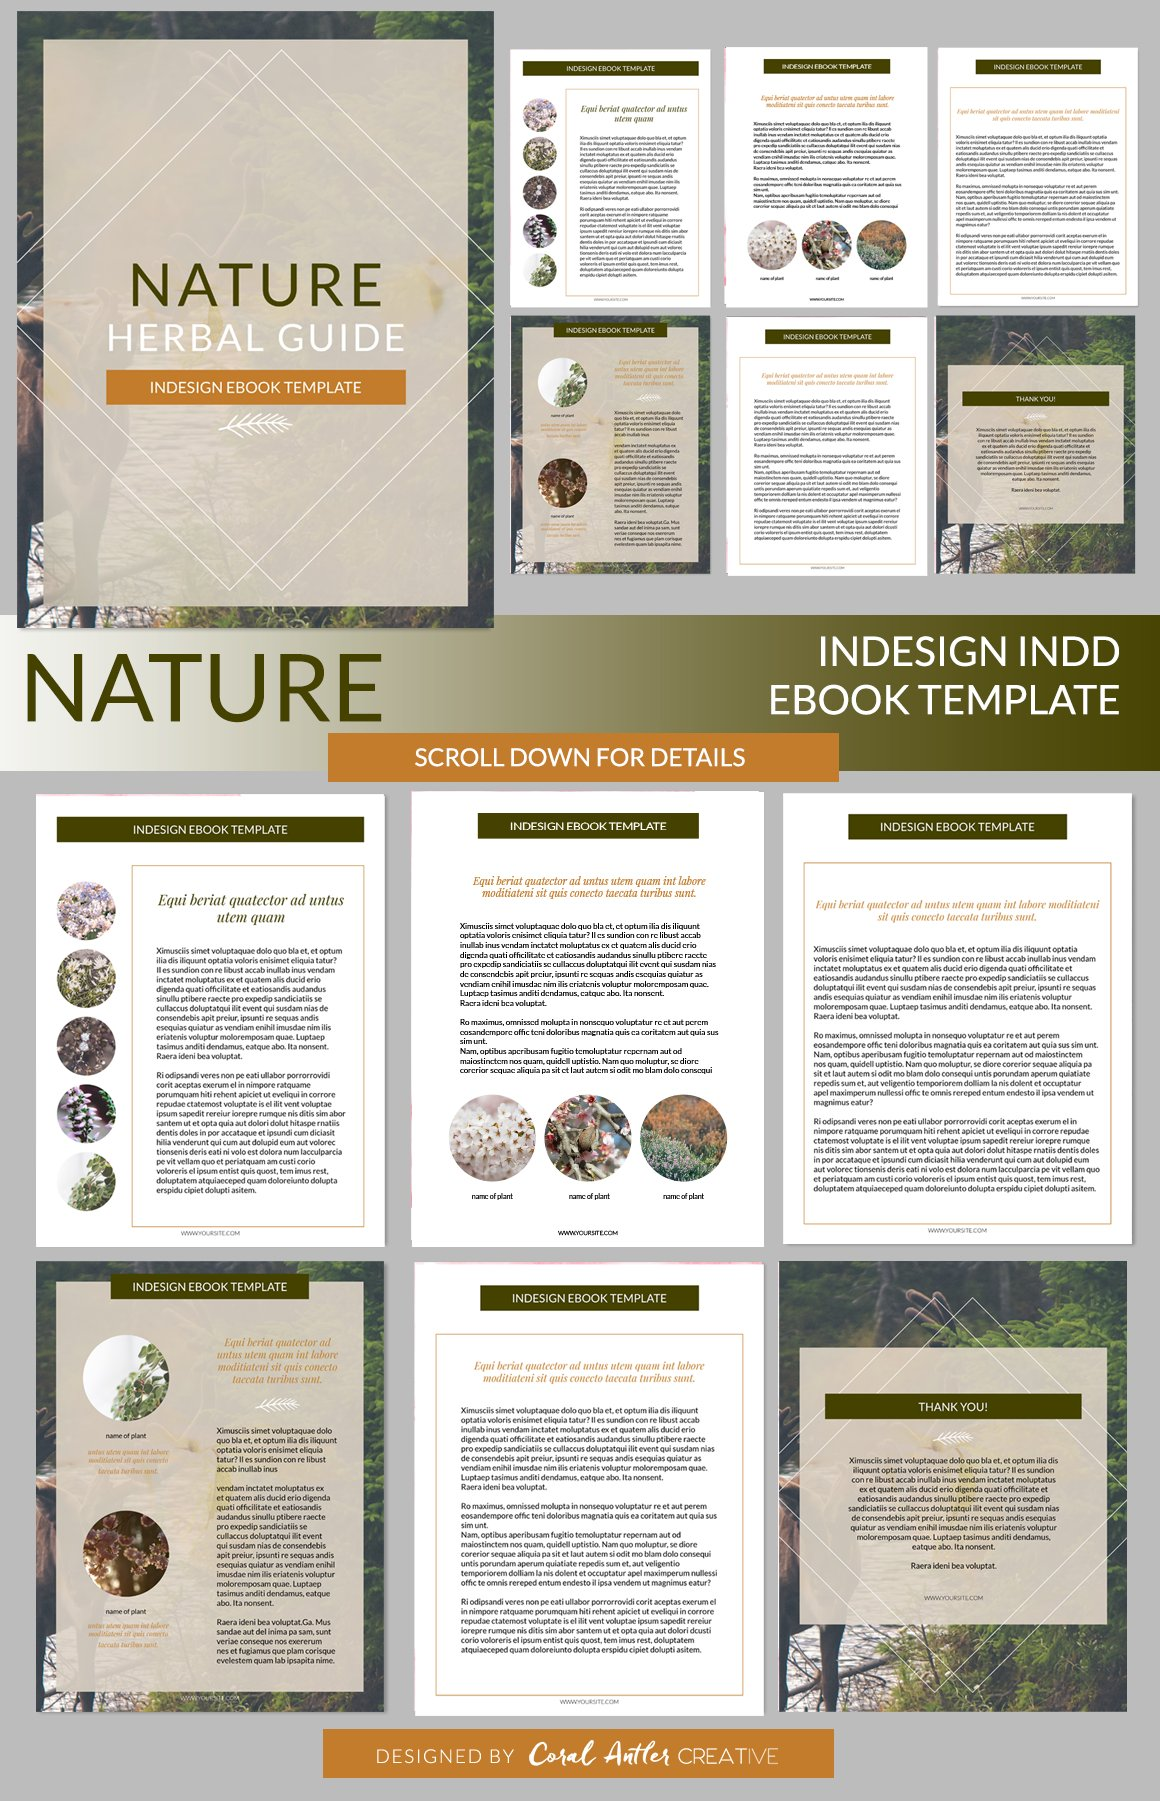 nature indesign ebook template presentation templates on